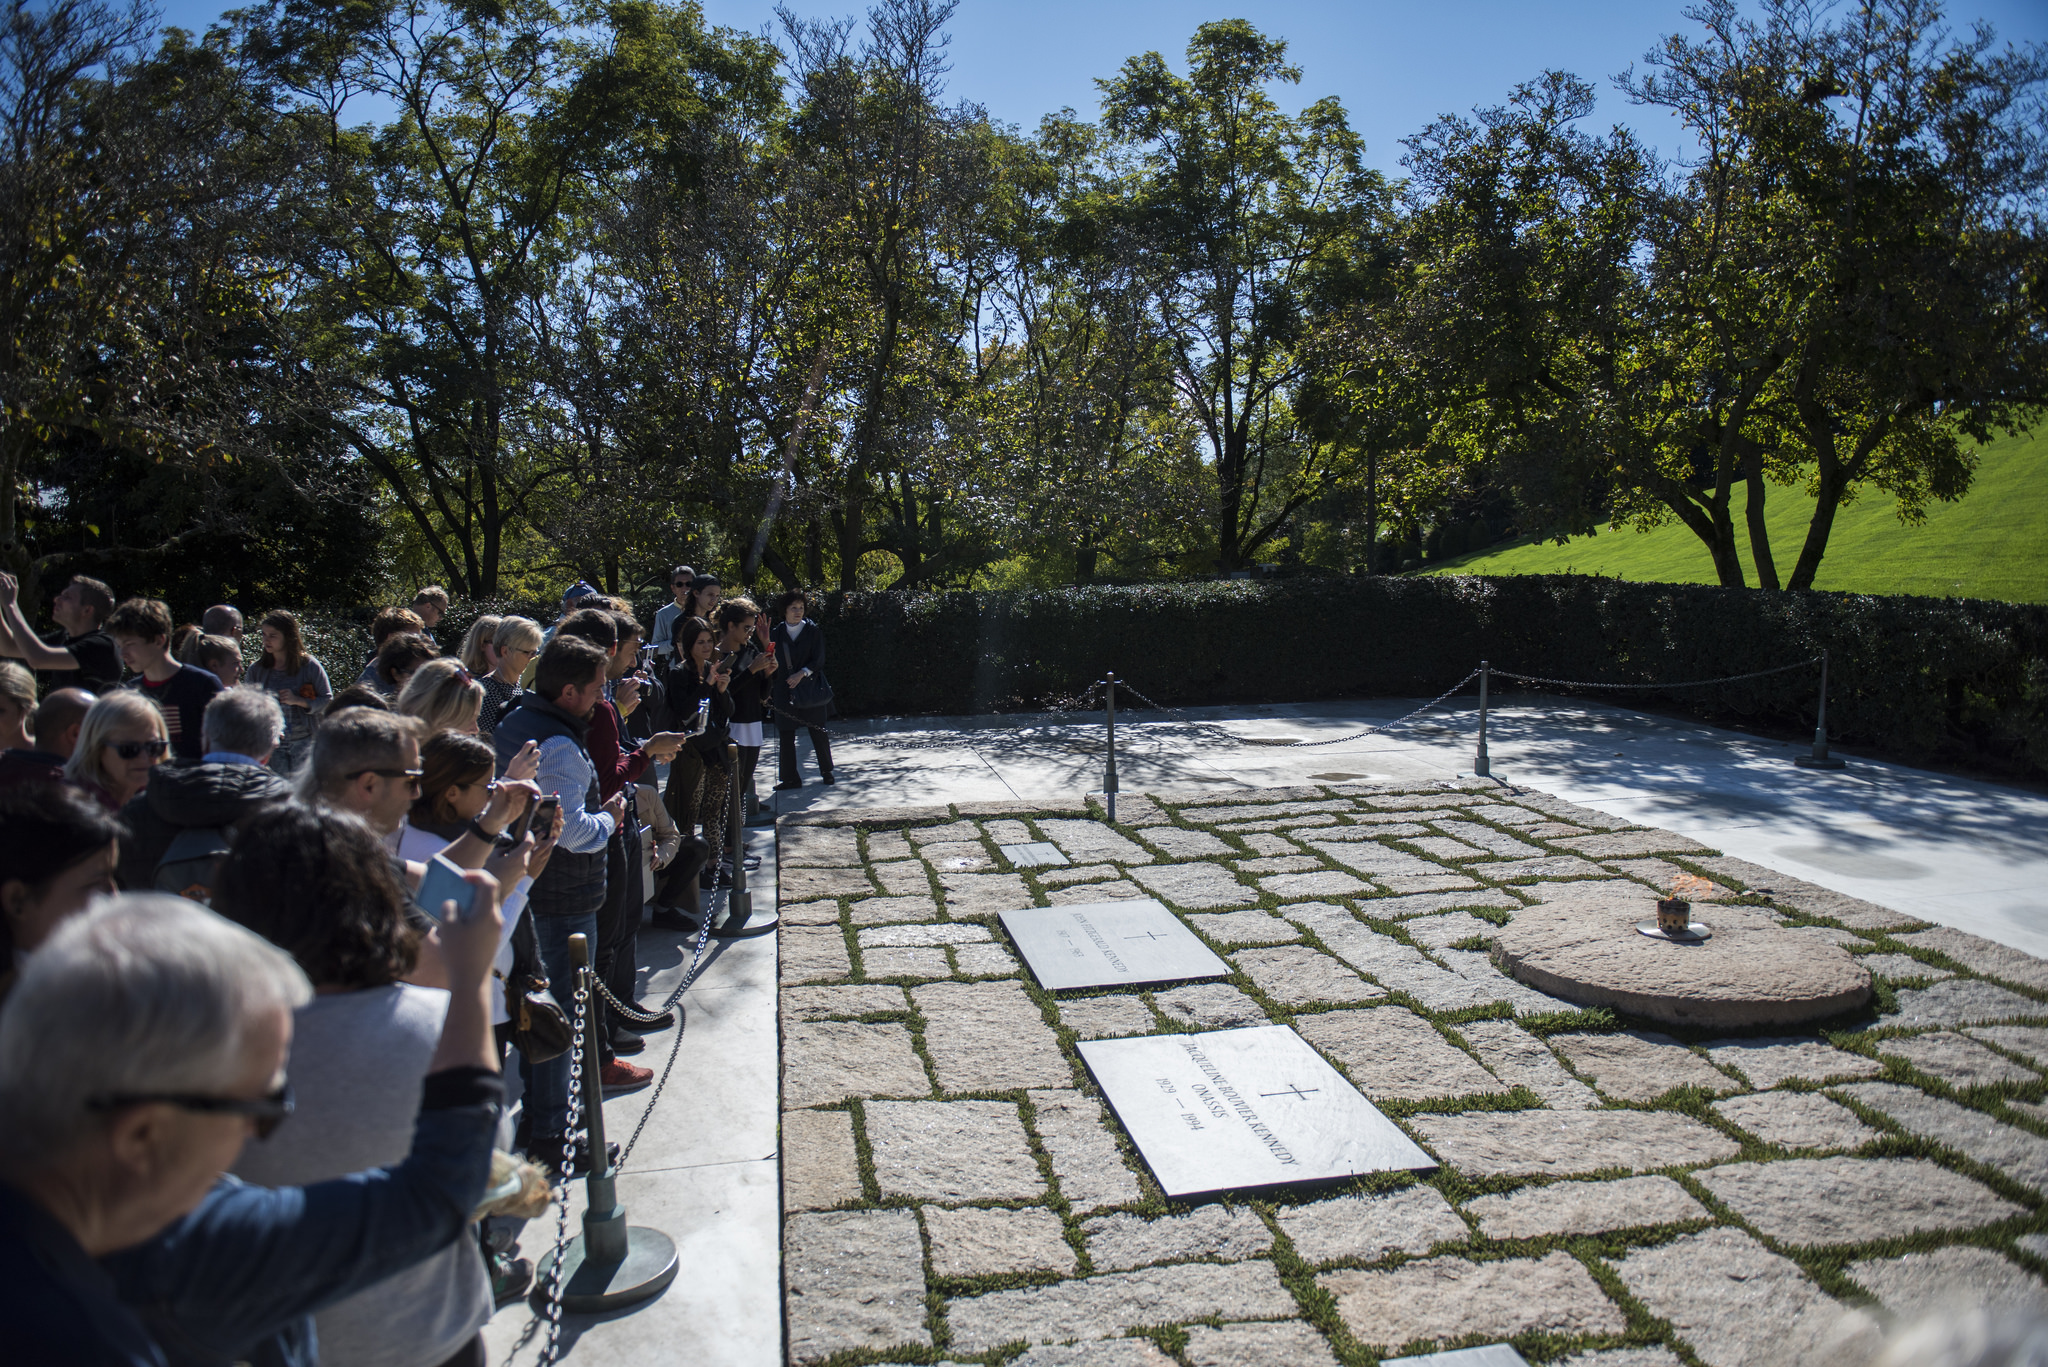 Visitors take photographs of the eternal flame at the gravesite of John F. Kennedy